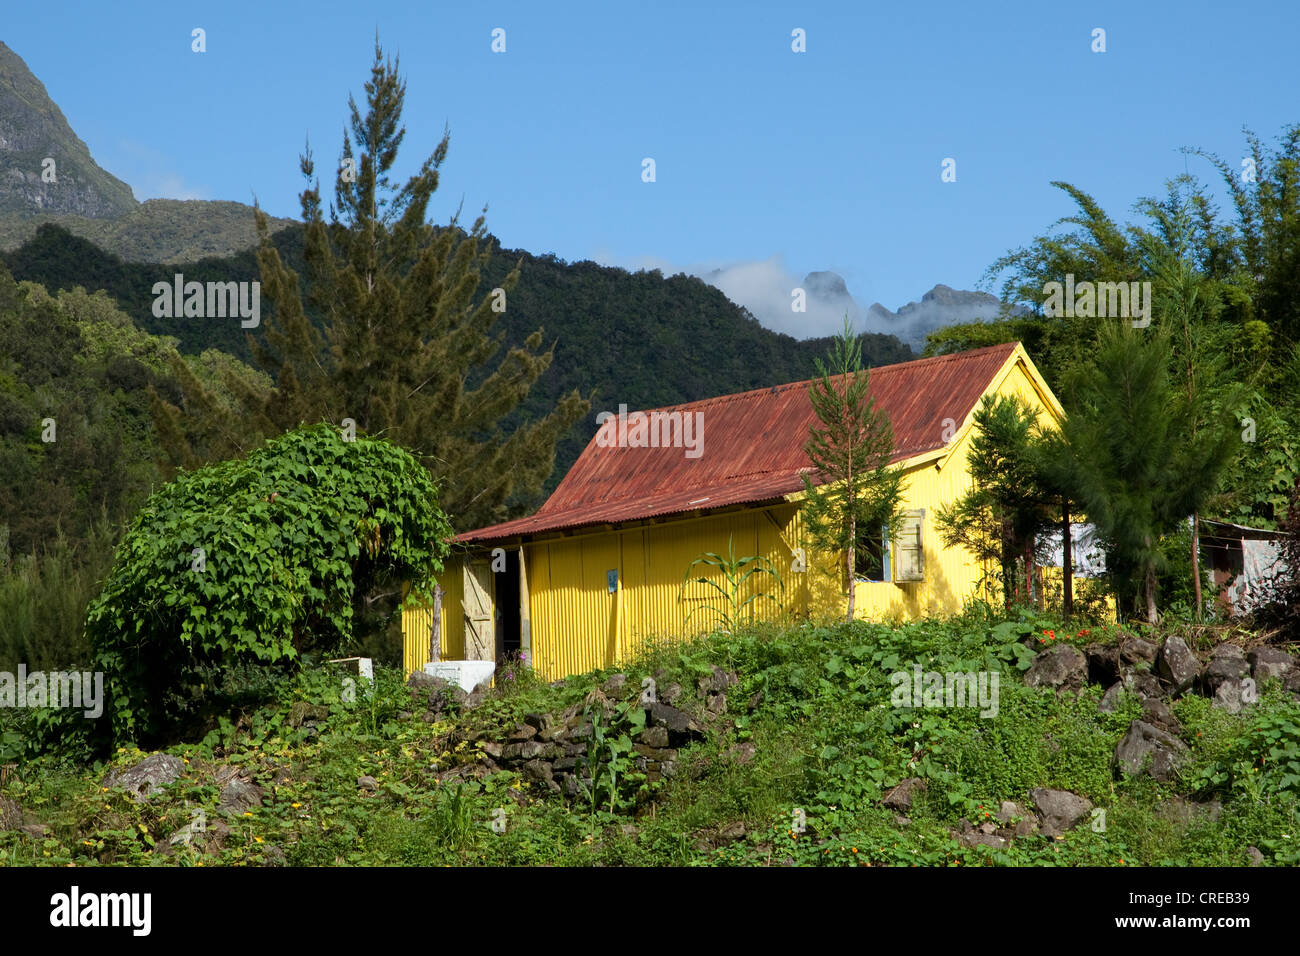 Tin hut in the Cirque de Salazie caldera in Hell-Bourg, Reunion island, Indian Ocean - Stock Image